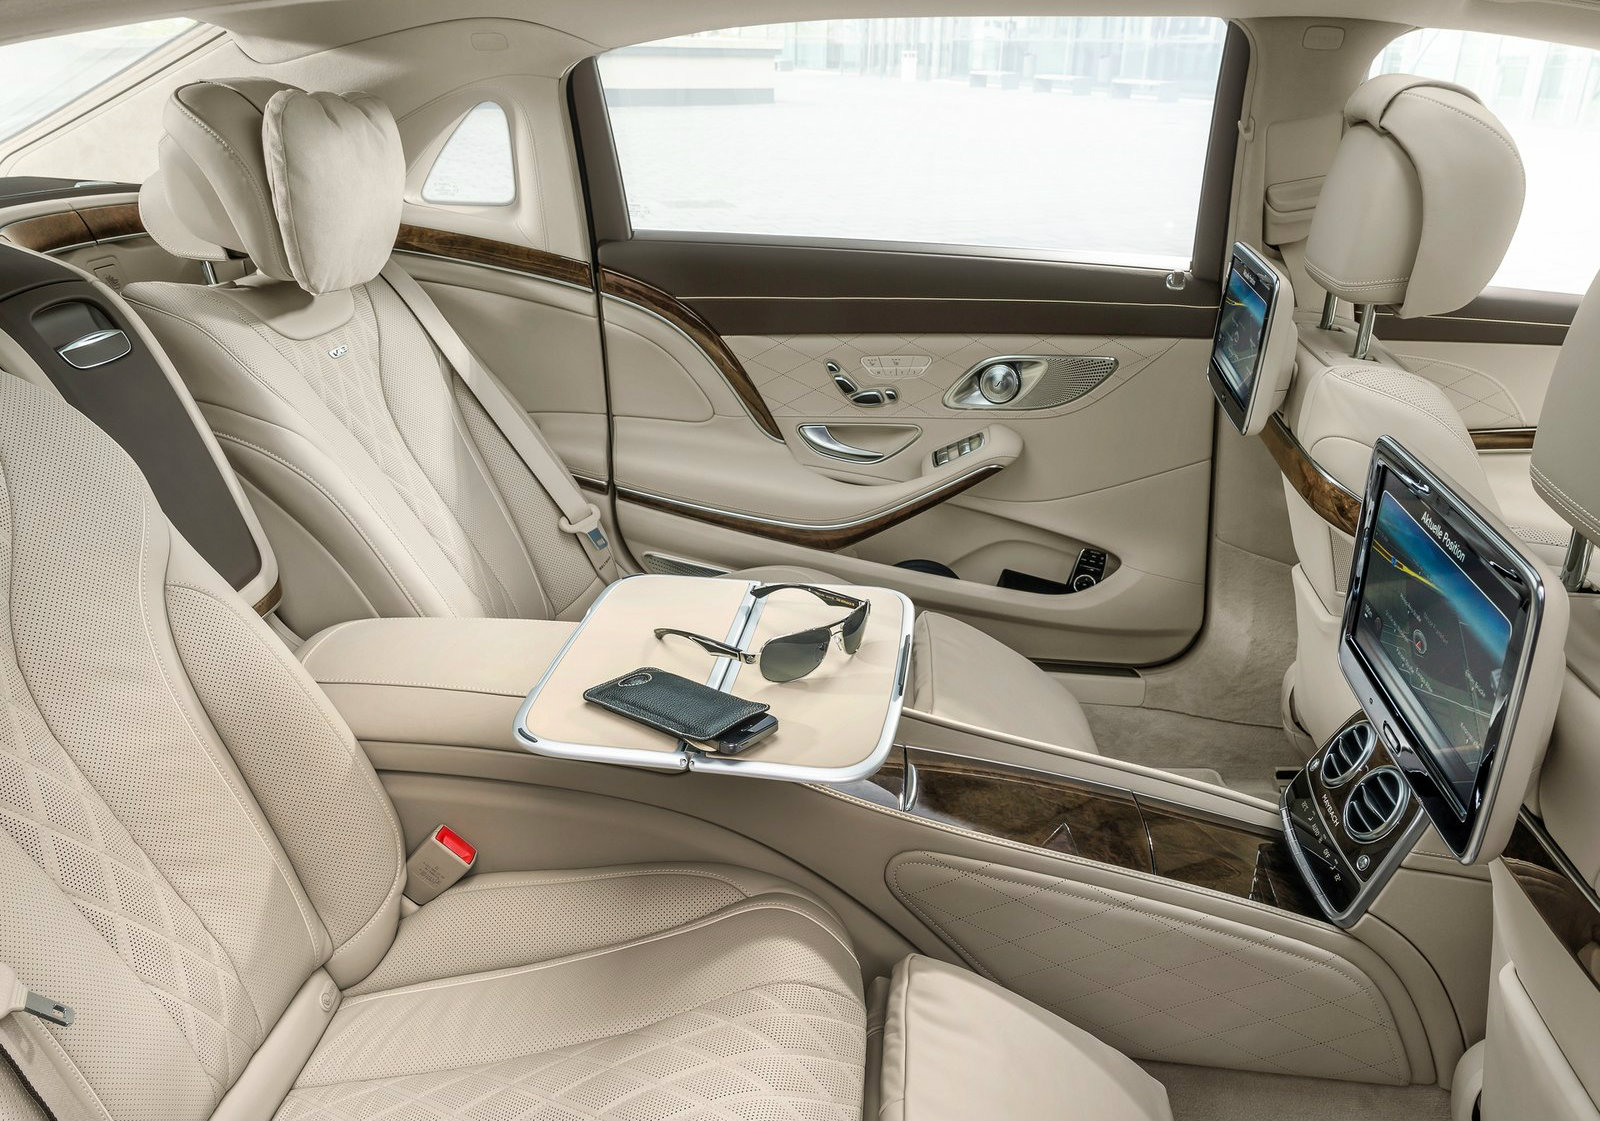 Mercedes maybach s500 priced at 134 053 s600 is 187 841 for Interieur de voiture de luxe